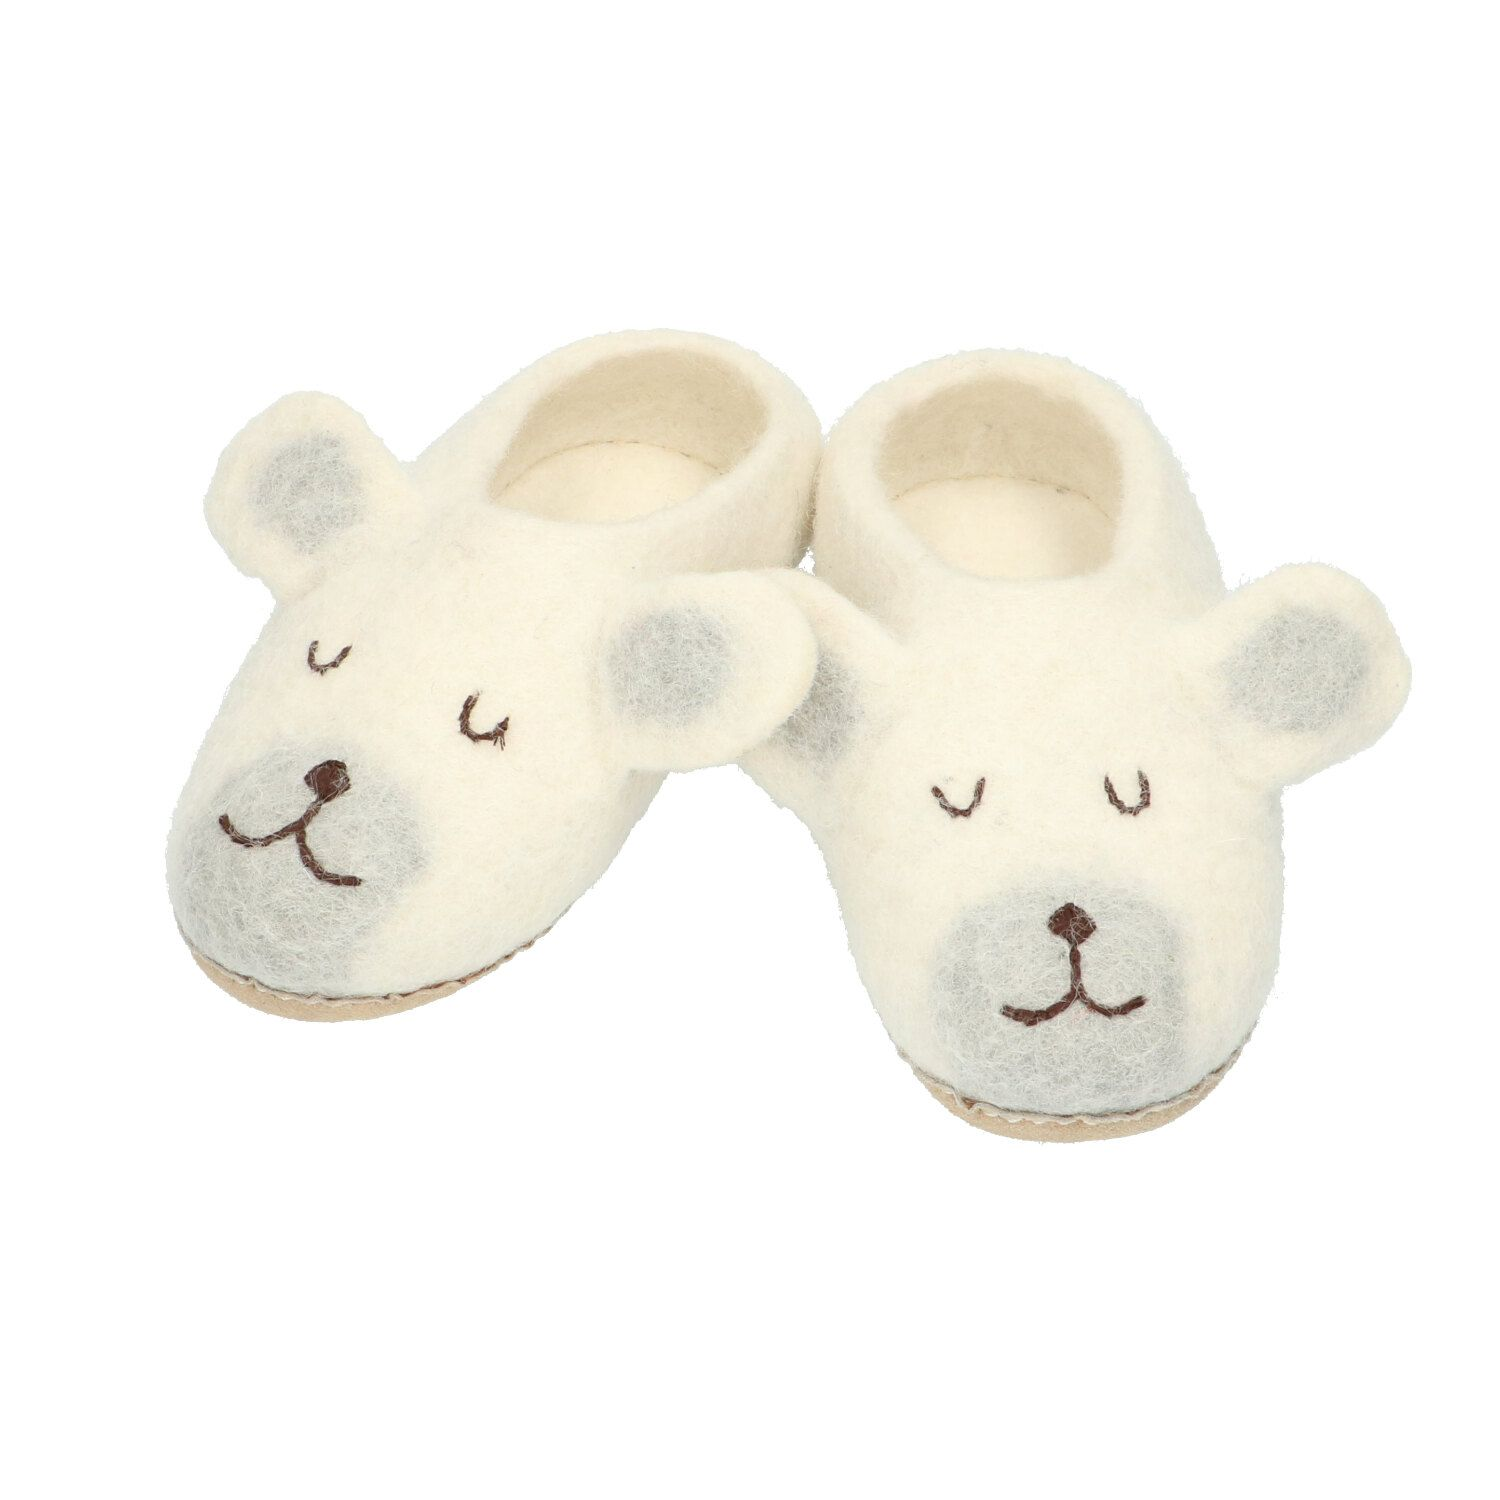 Chaussons, ours polaire, feutrine, 26/27